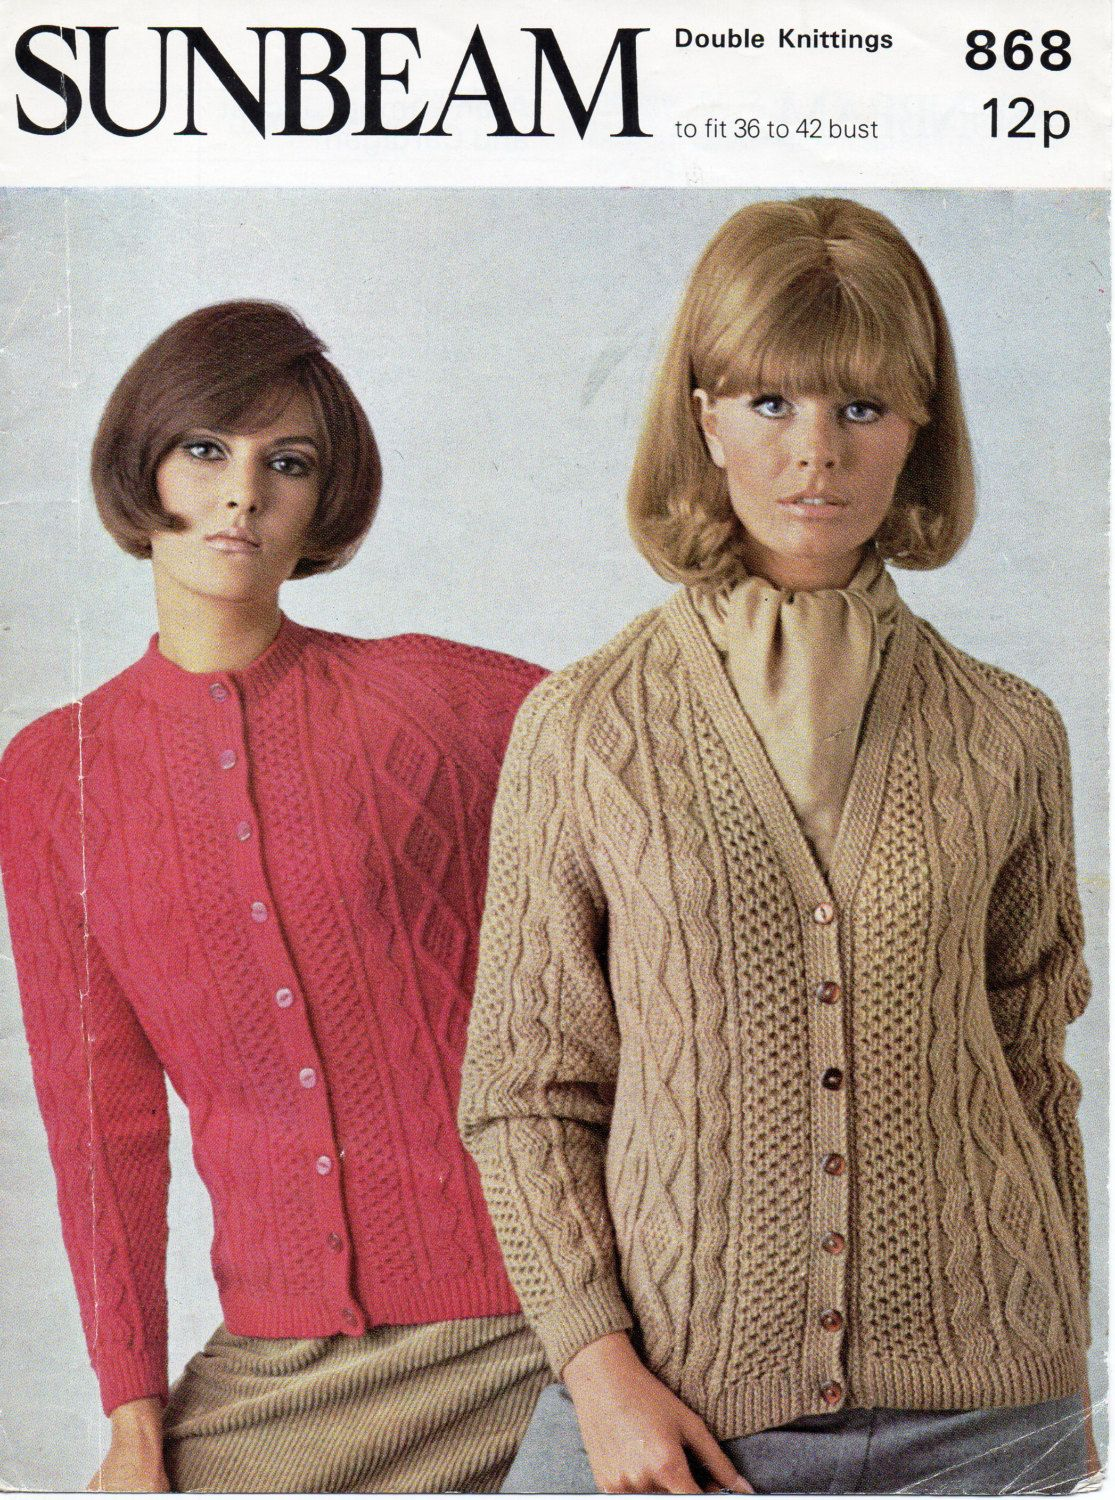 42bcf8770 womens aran cardigans knitting pattern cable jackets 1970s v neck crew neck  36-42 inch DK womens knitting pattern pdf instant download by Hobohooks on  Etsy